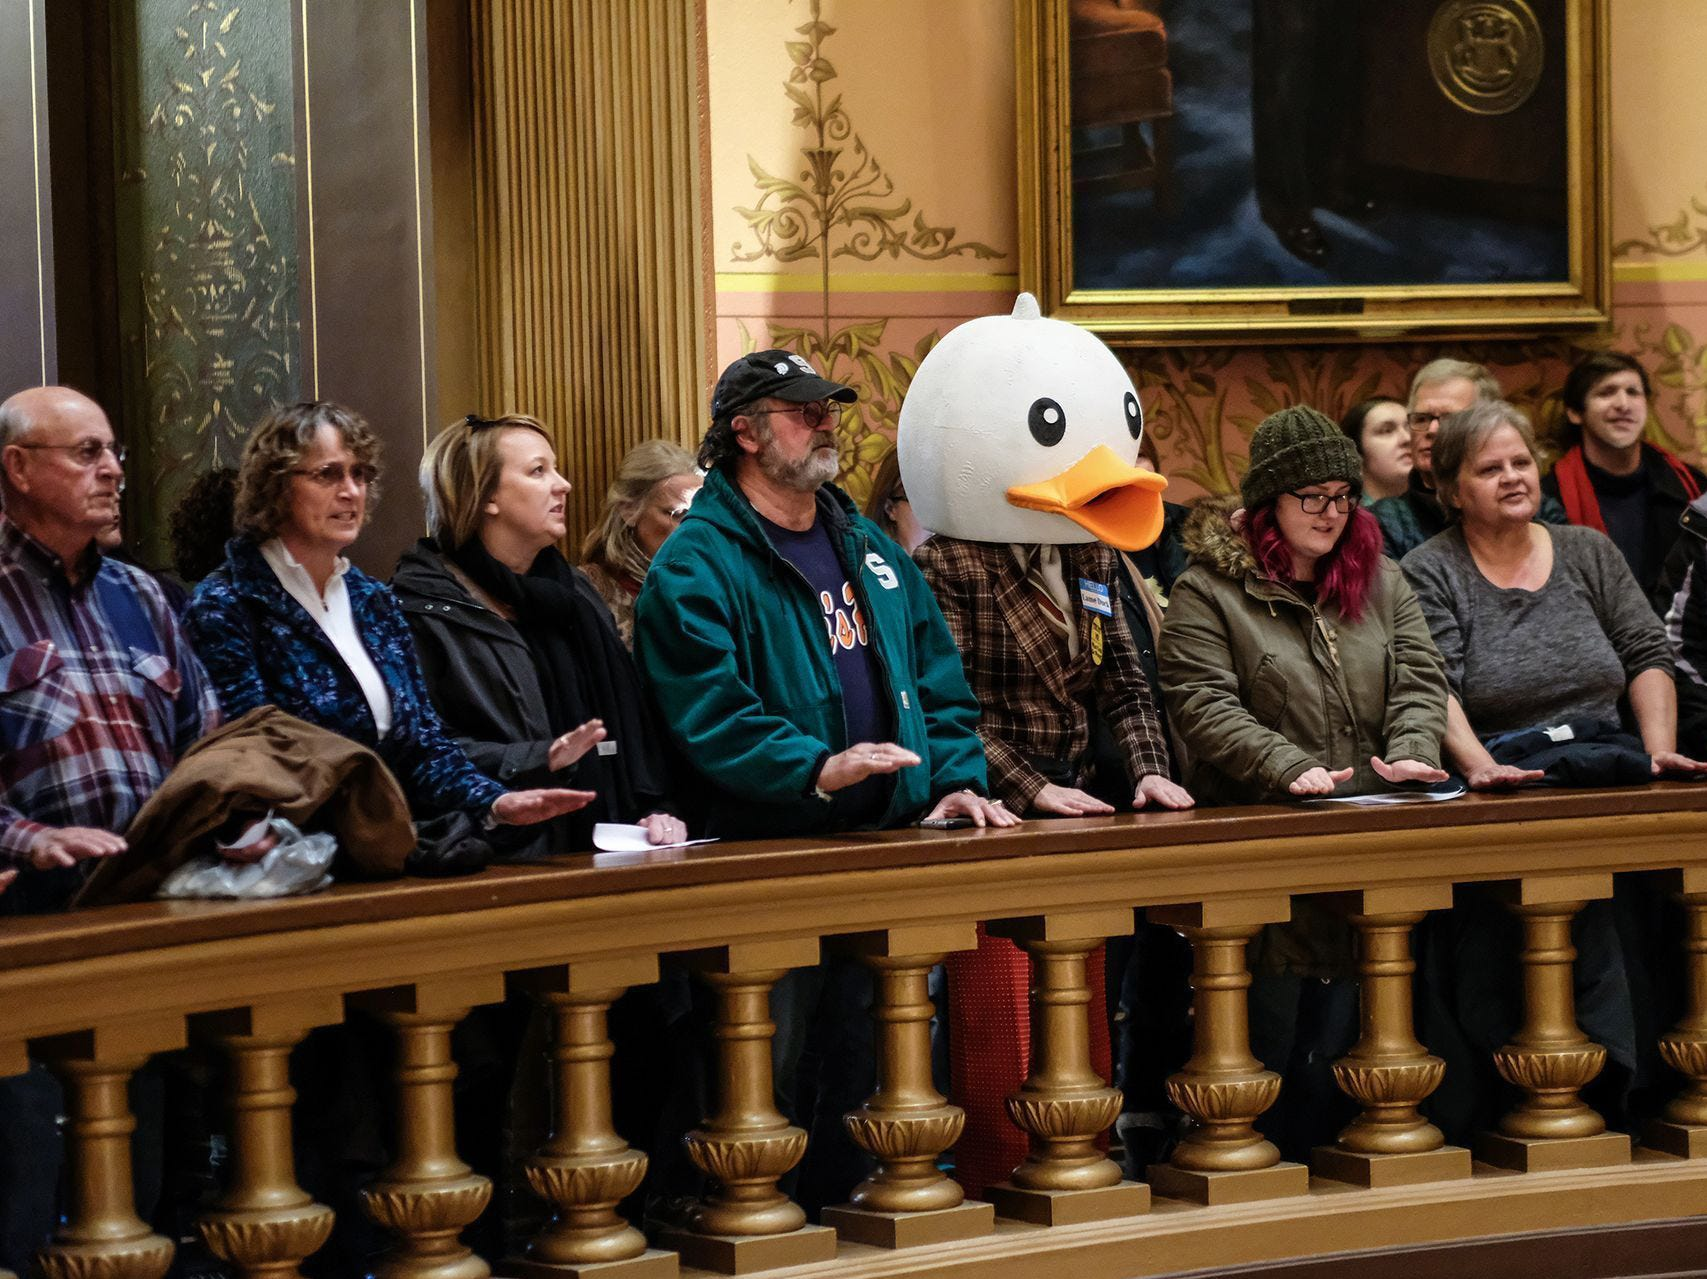 People line the Capitol Rotunda balcony protesting the lame duck legislation proposed by Republicans on Tuesday, Dec. 4, 2018.